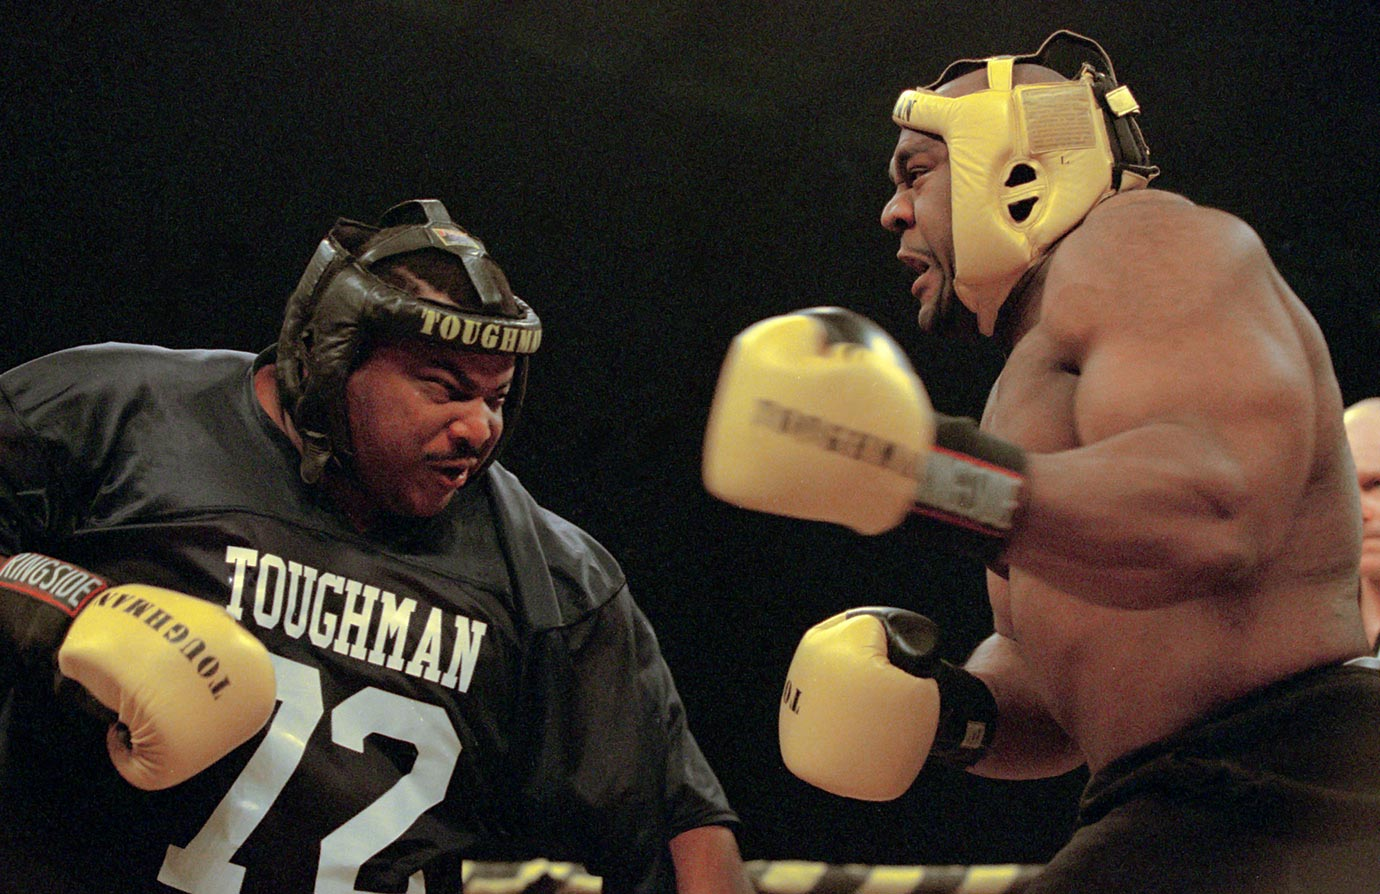 Nov. 4, 2000 — Toughman Boxing Competition